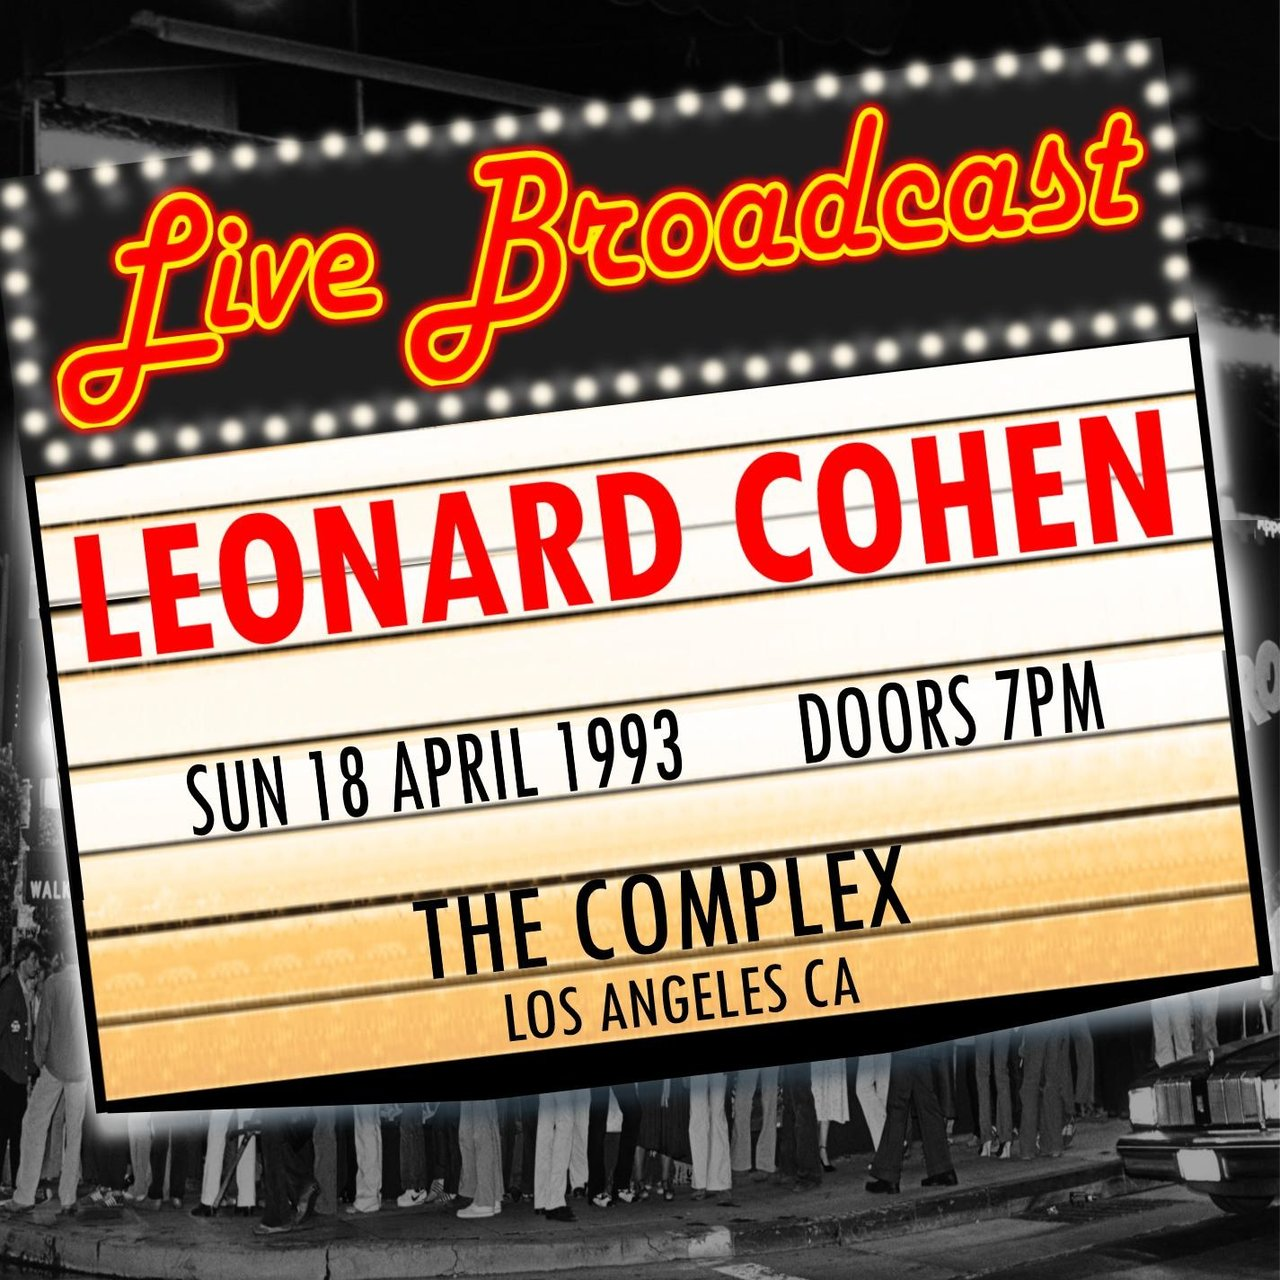 Live Broadcast - 18th April 1993  The Complex